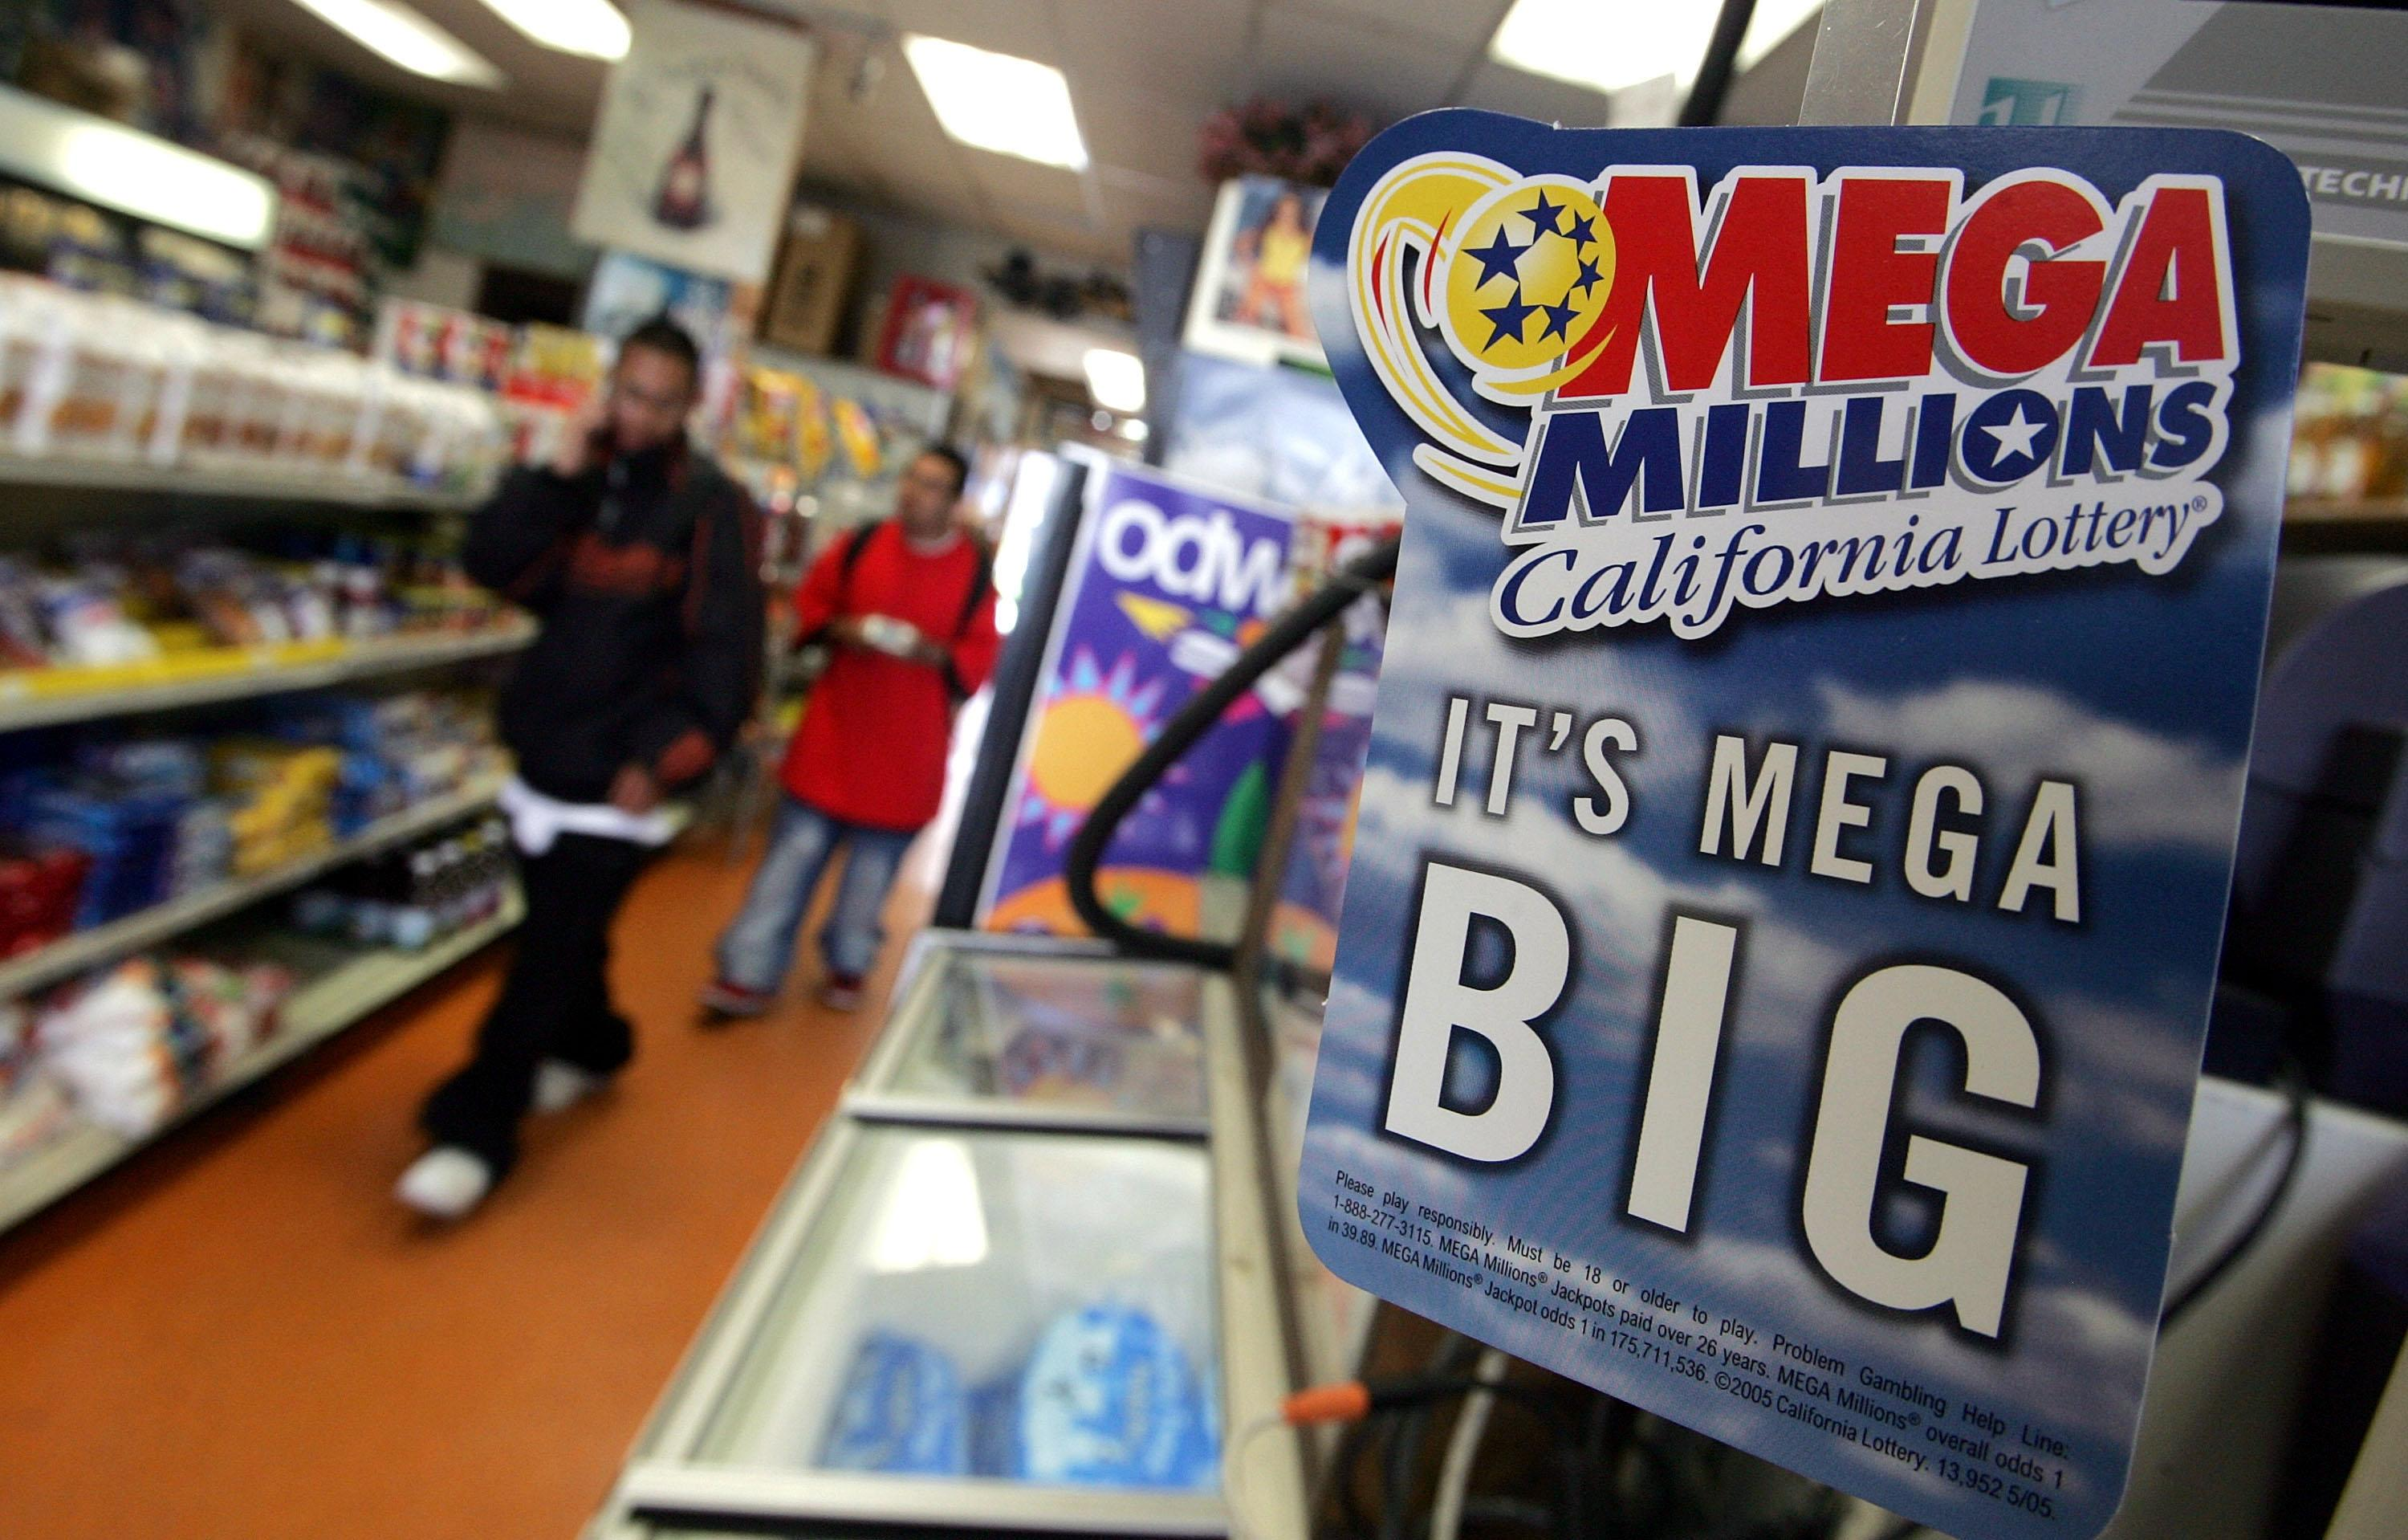 Mega Millions jackpot rises to $415 million